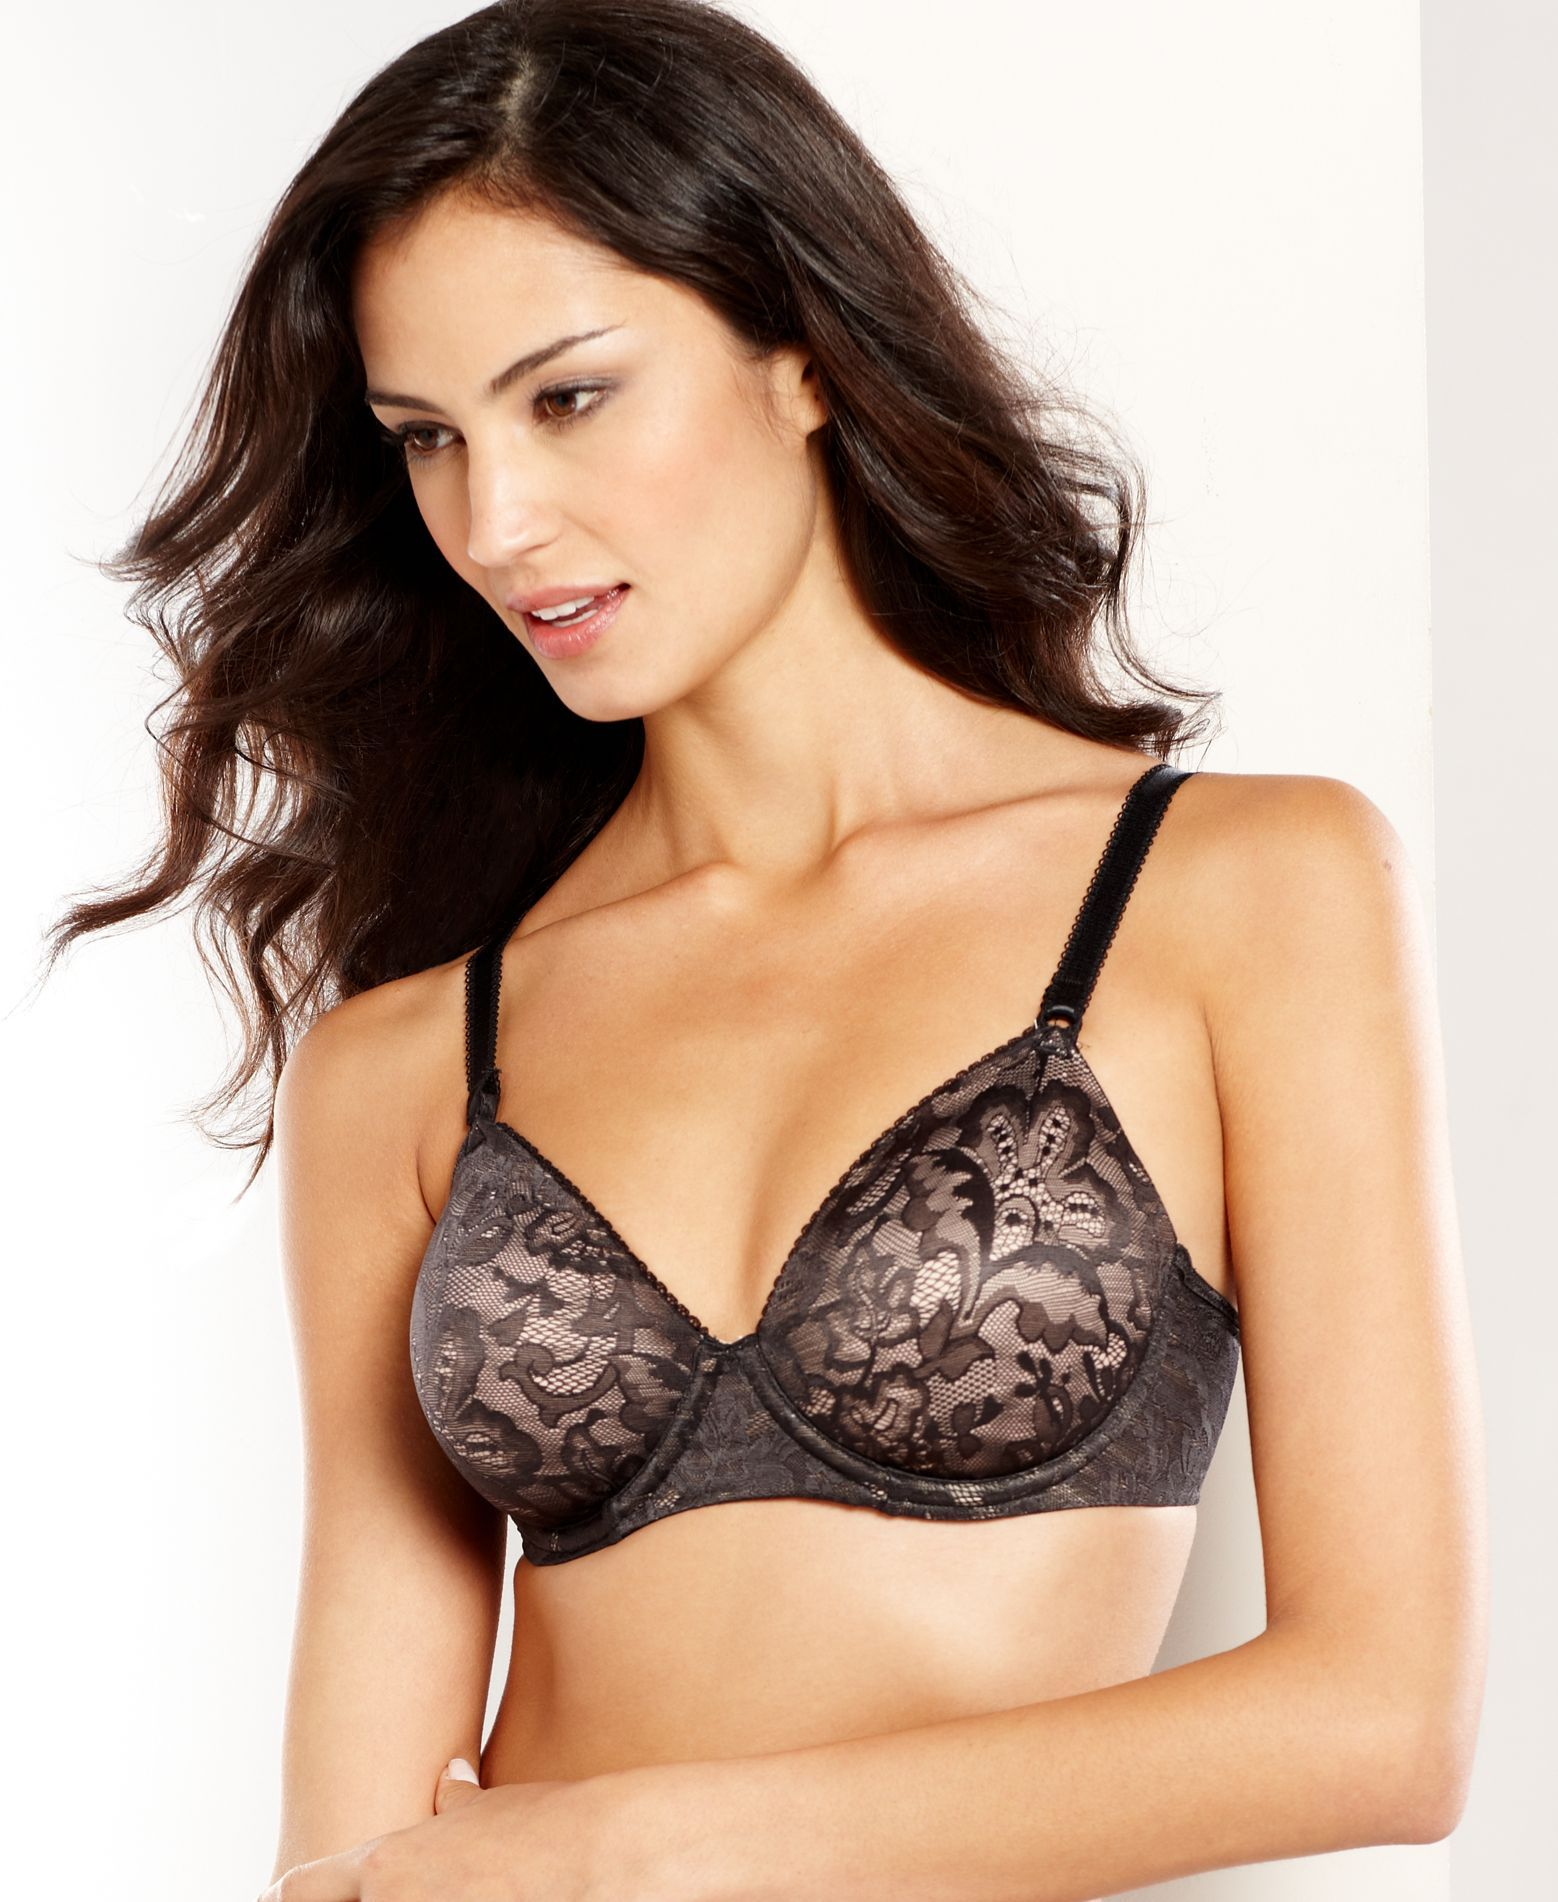 Bali One Smooth U Lace Underwire Bra 3516 | Shops, Us and Lace